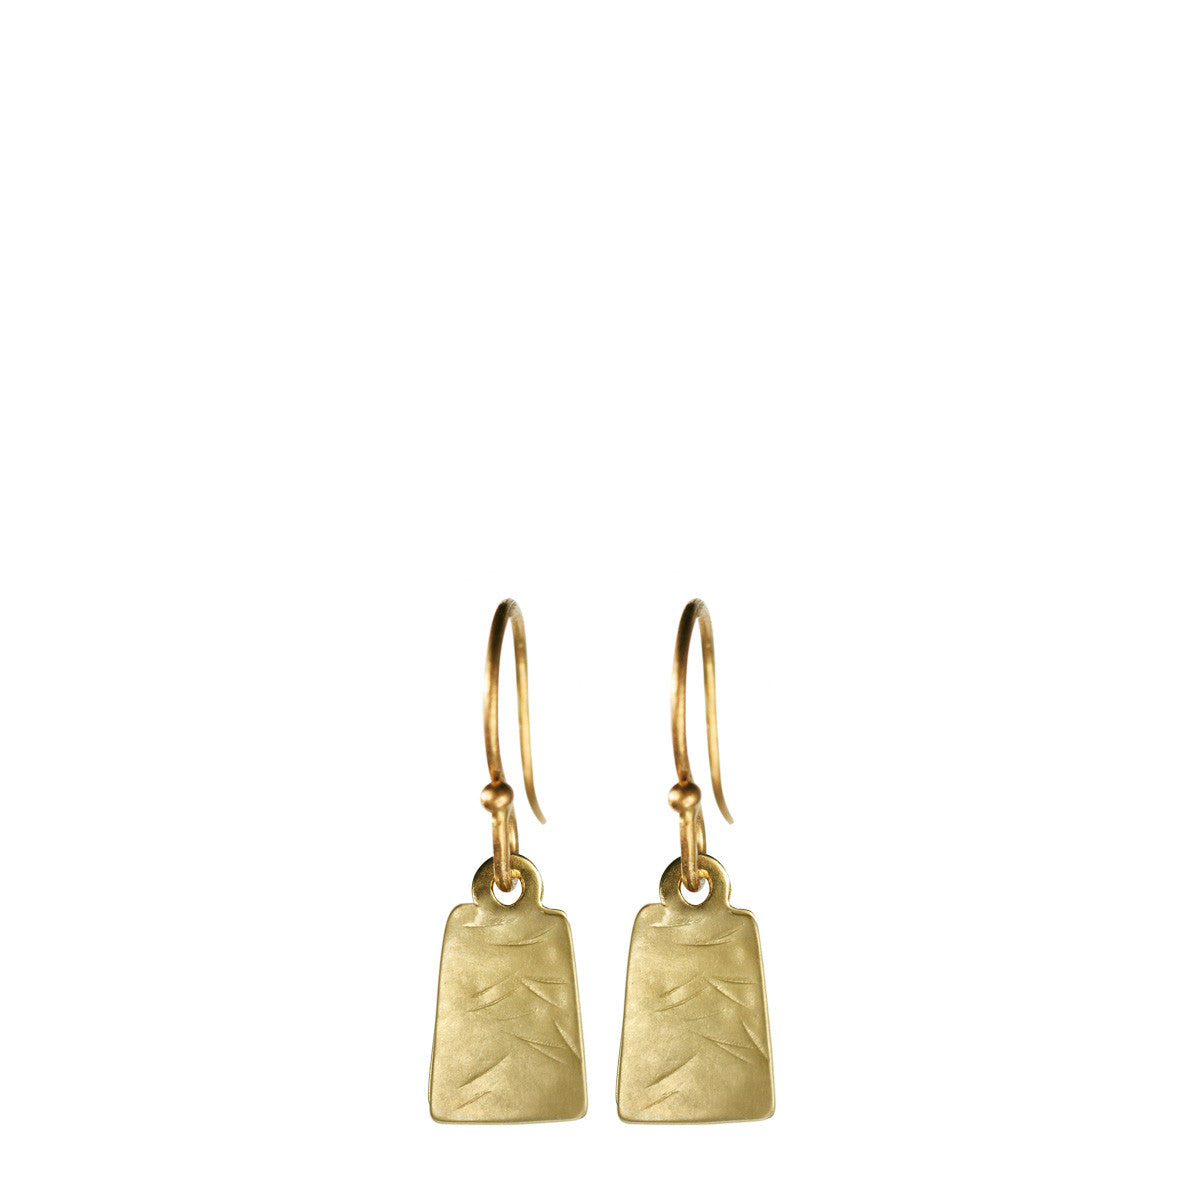 10K Gold Flattened Square Earrings